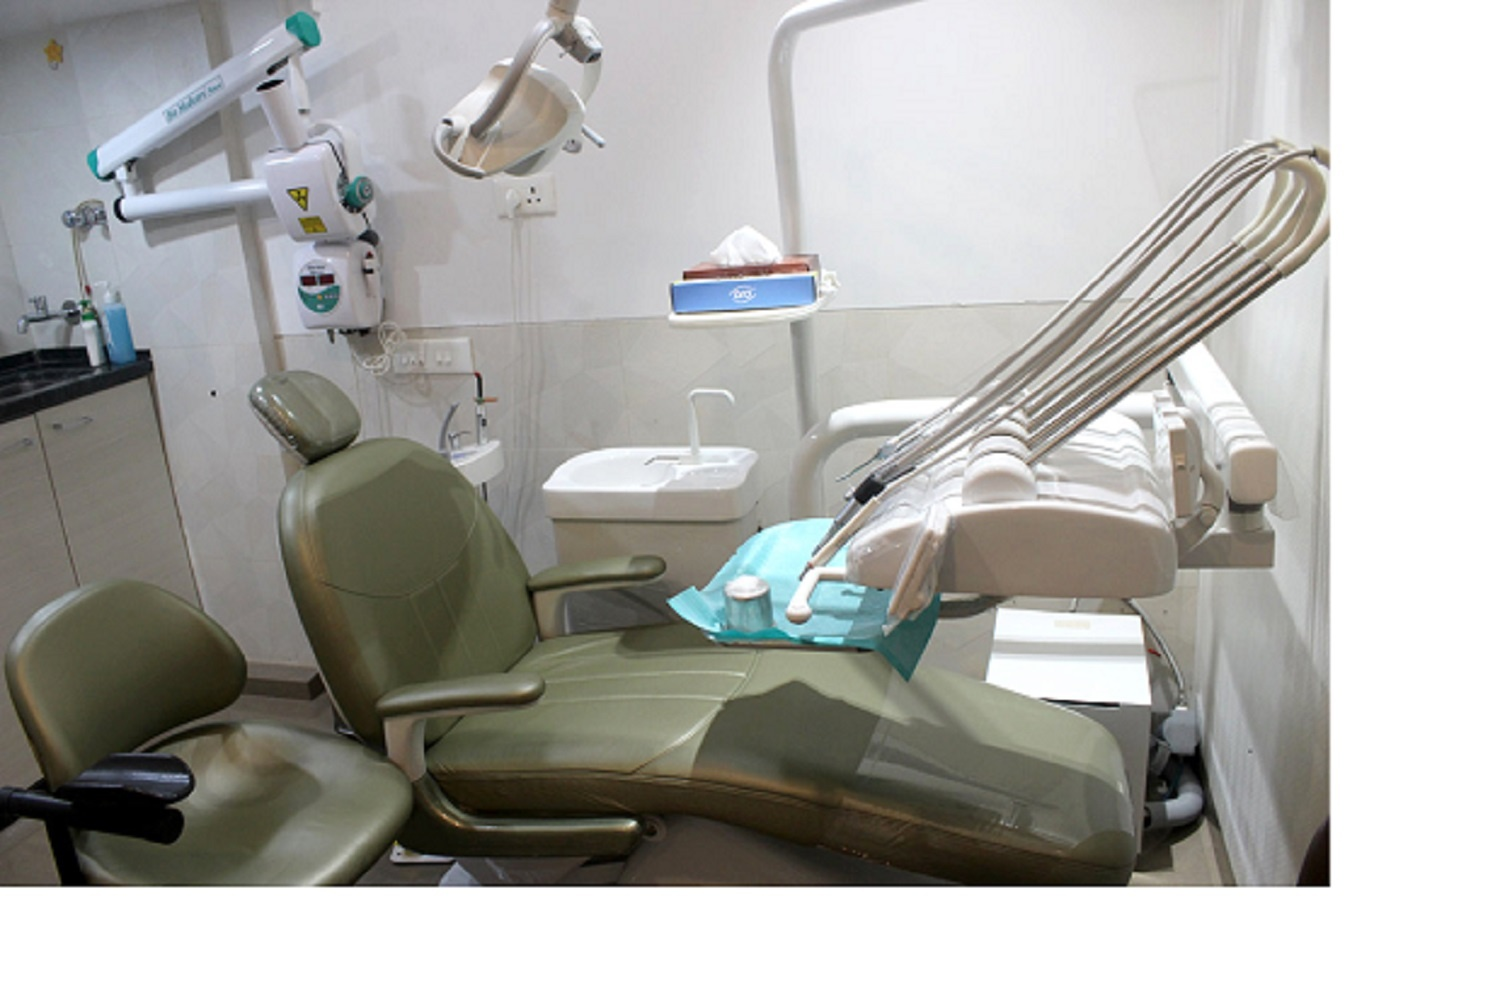 How to find a good dentist in Mumbai, India - Quora